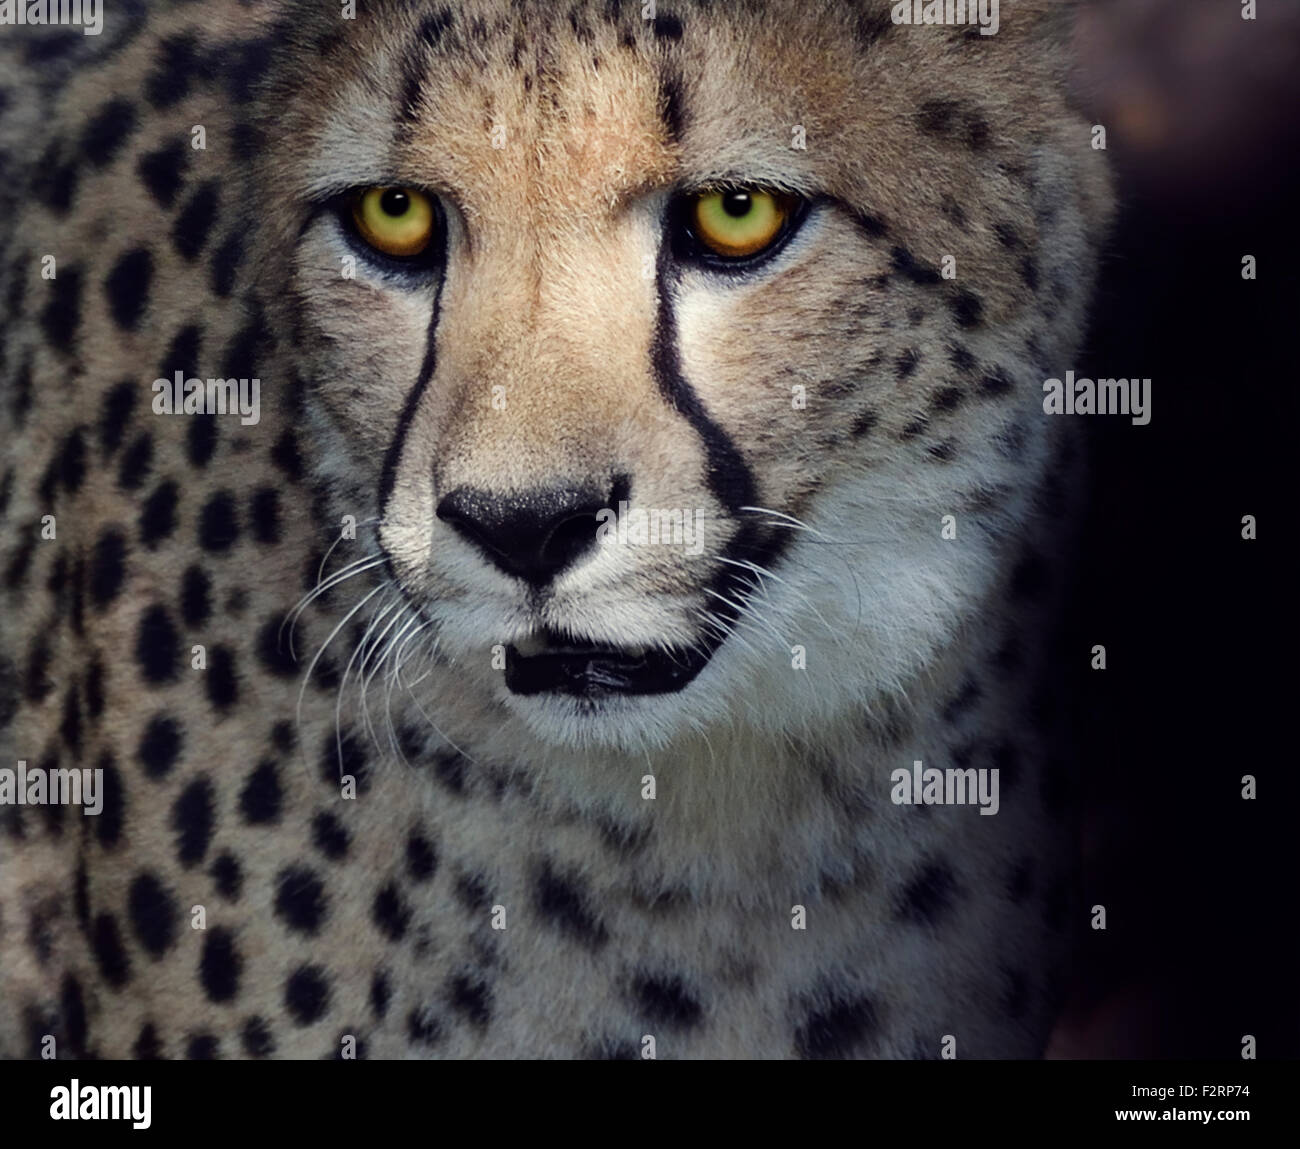 Portrait of Cheetah ,Closeup Shot - Stock Image